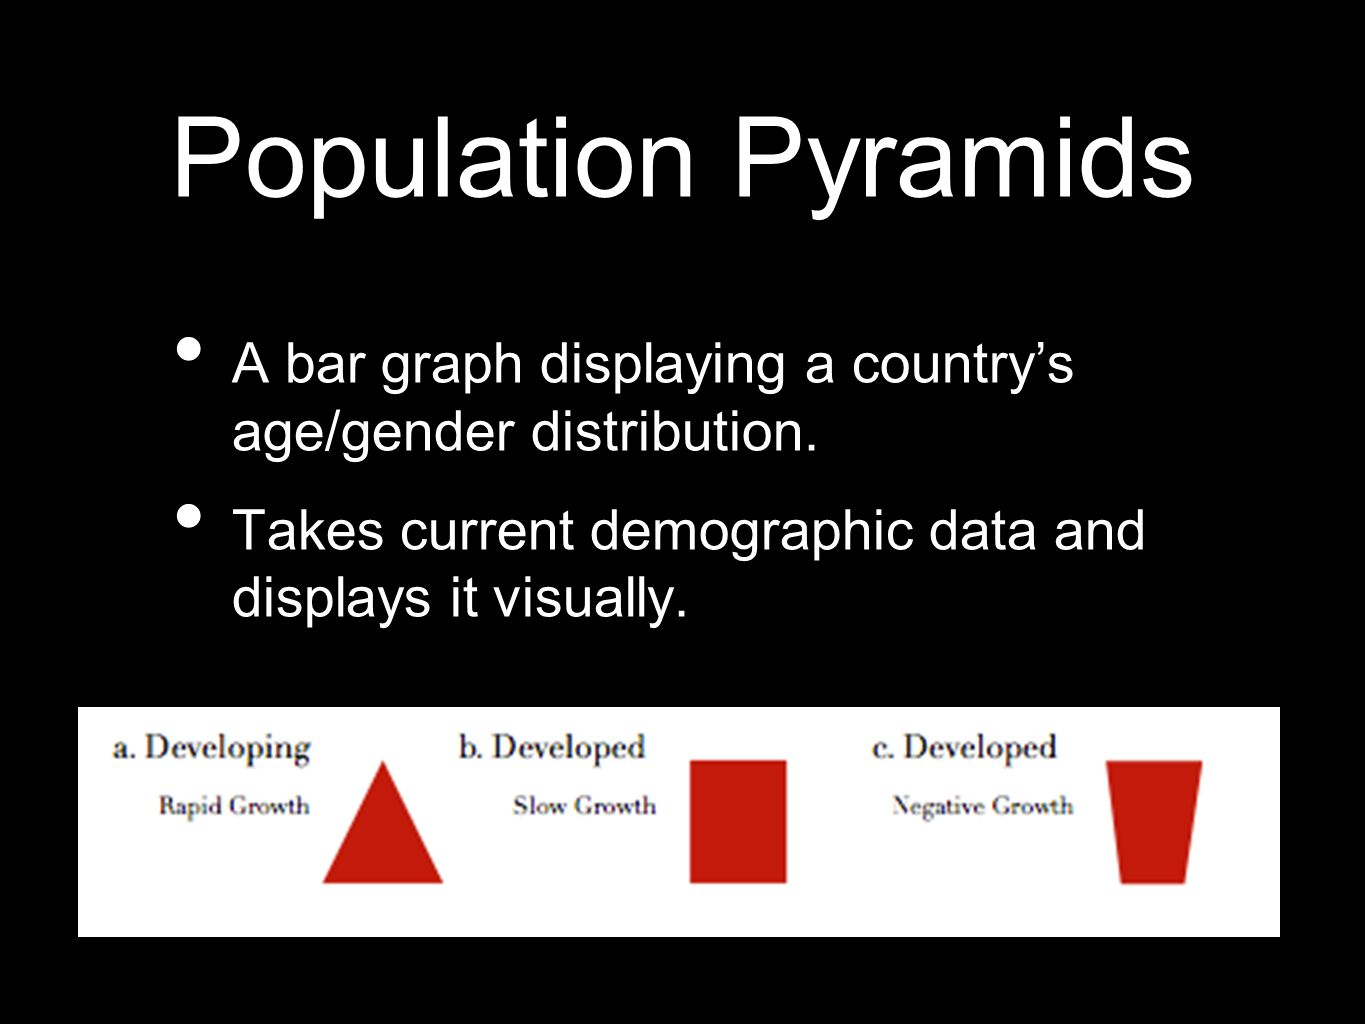 Population Pyramids A bar graph displaying a country's age/gender distribution.